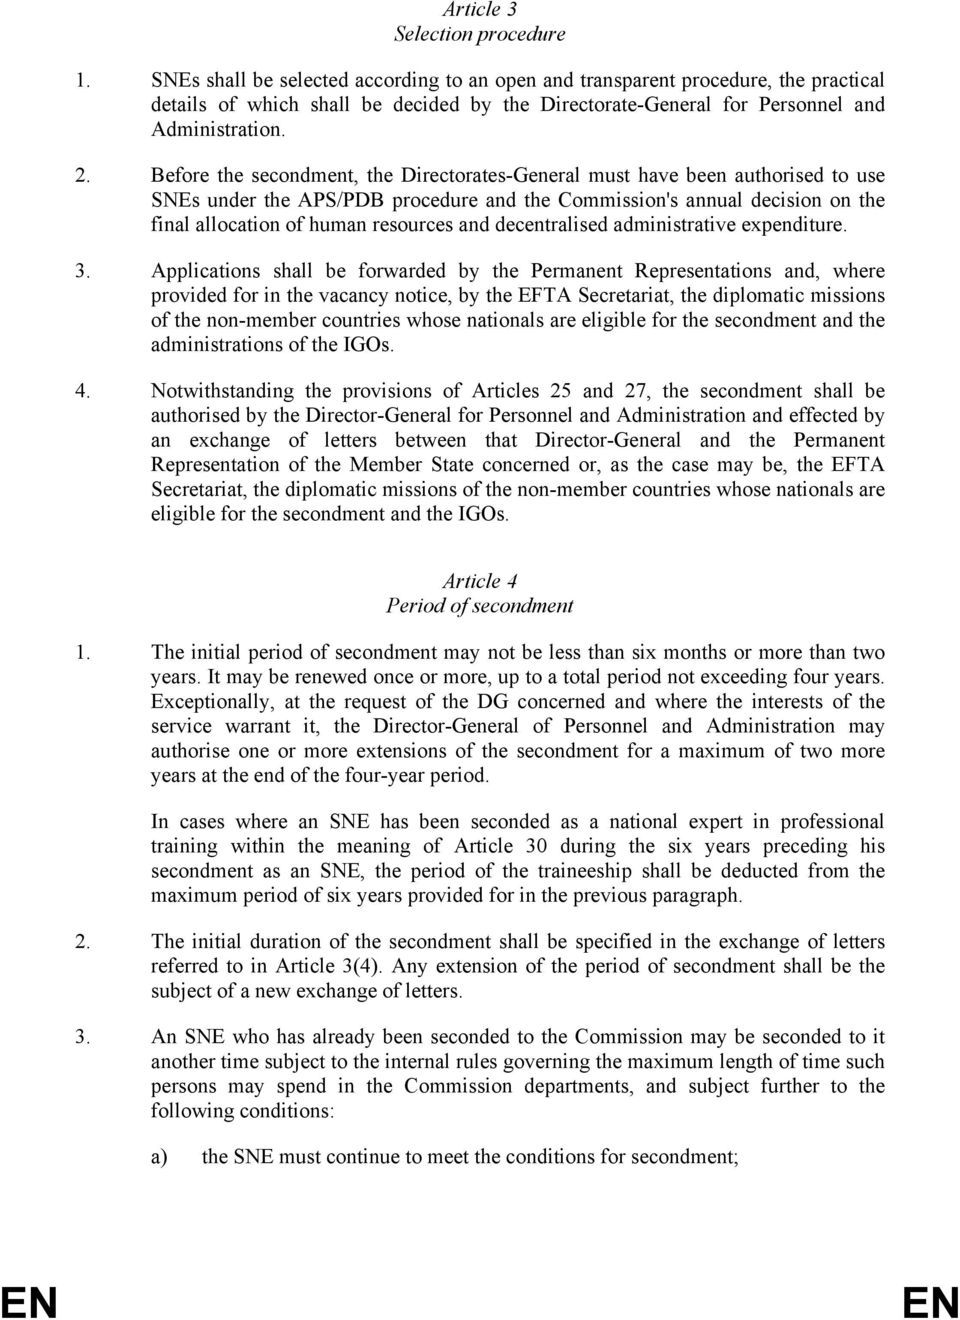 Before the secondment, the Directorates-General must have been authorised to use SNEs under the APS/PDB procedure and the Commission's annual decision on the final allocation of human resources and